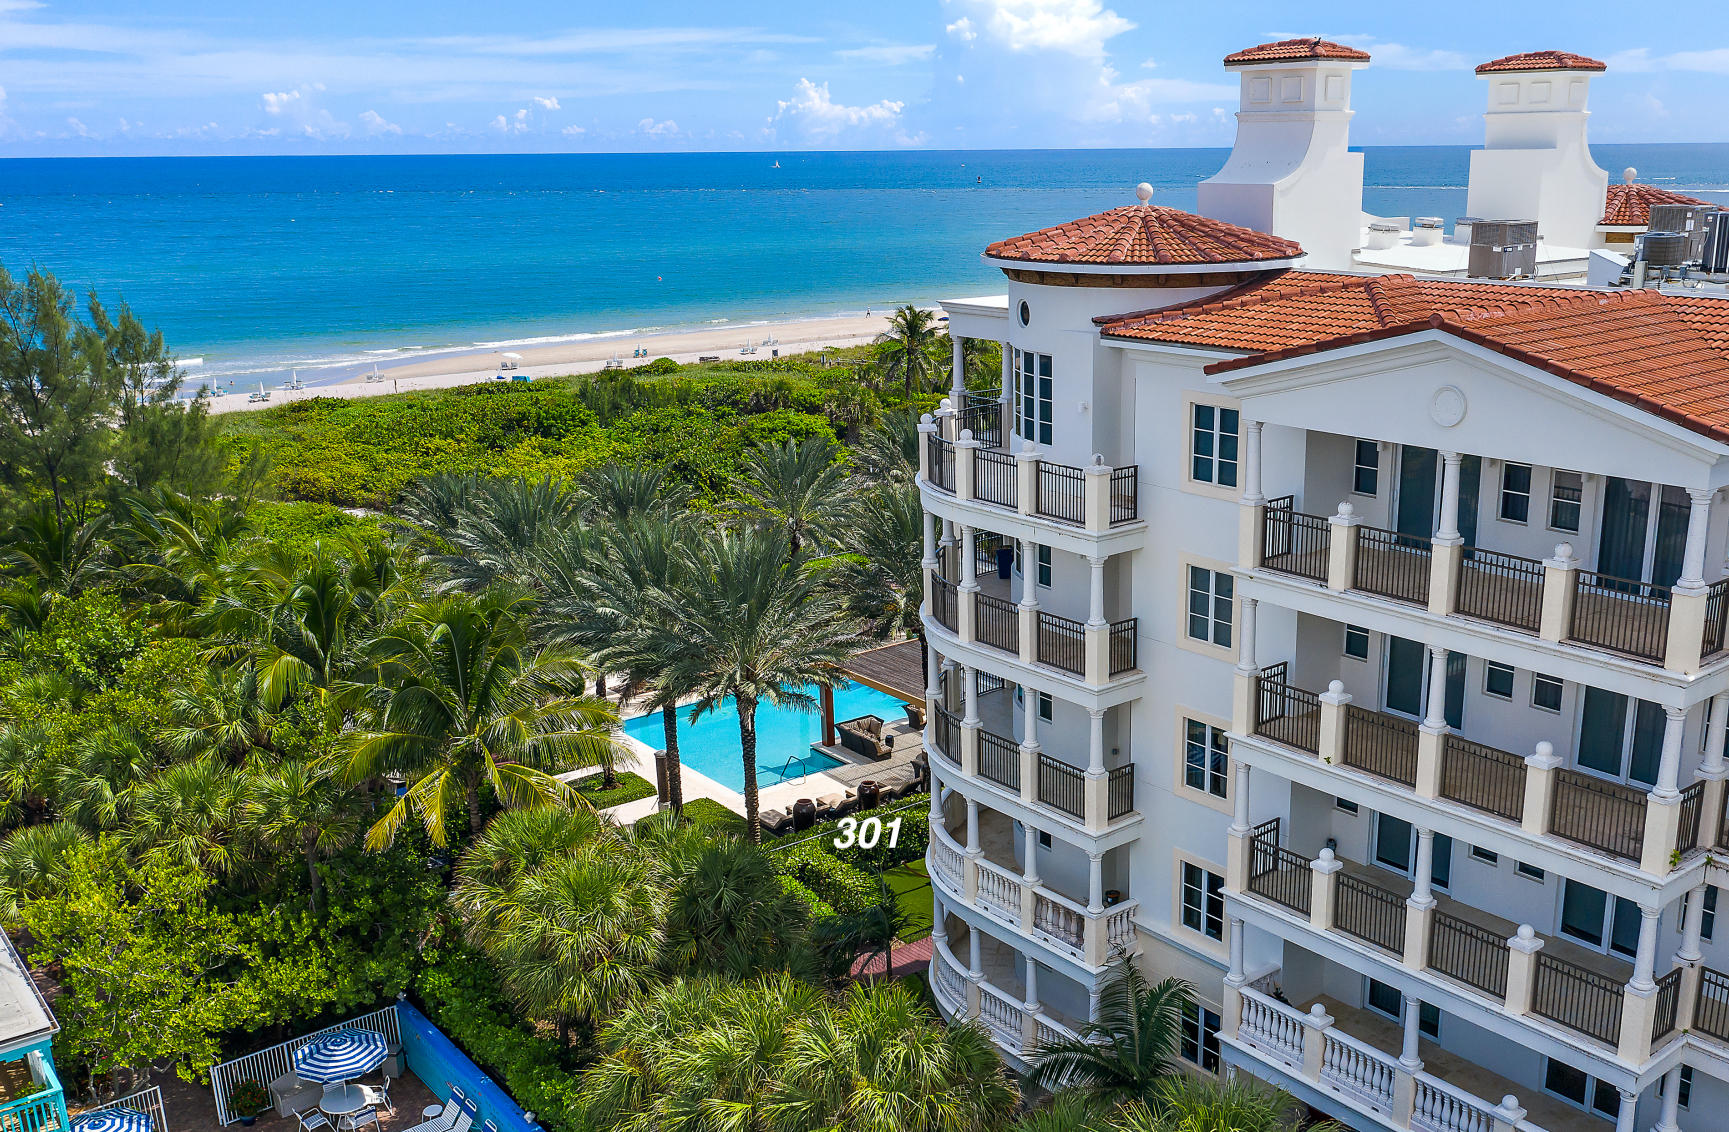 Home for sale in Dolce Vita, Dolcevita Palm Beach Shores Florida